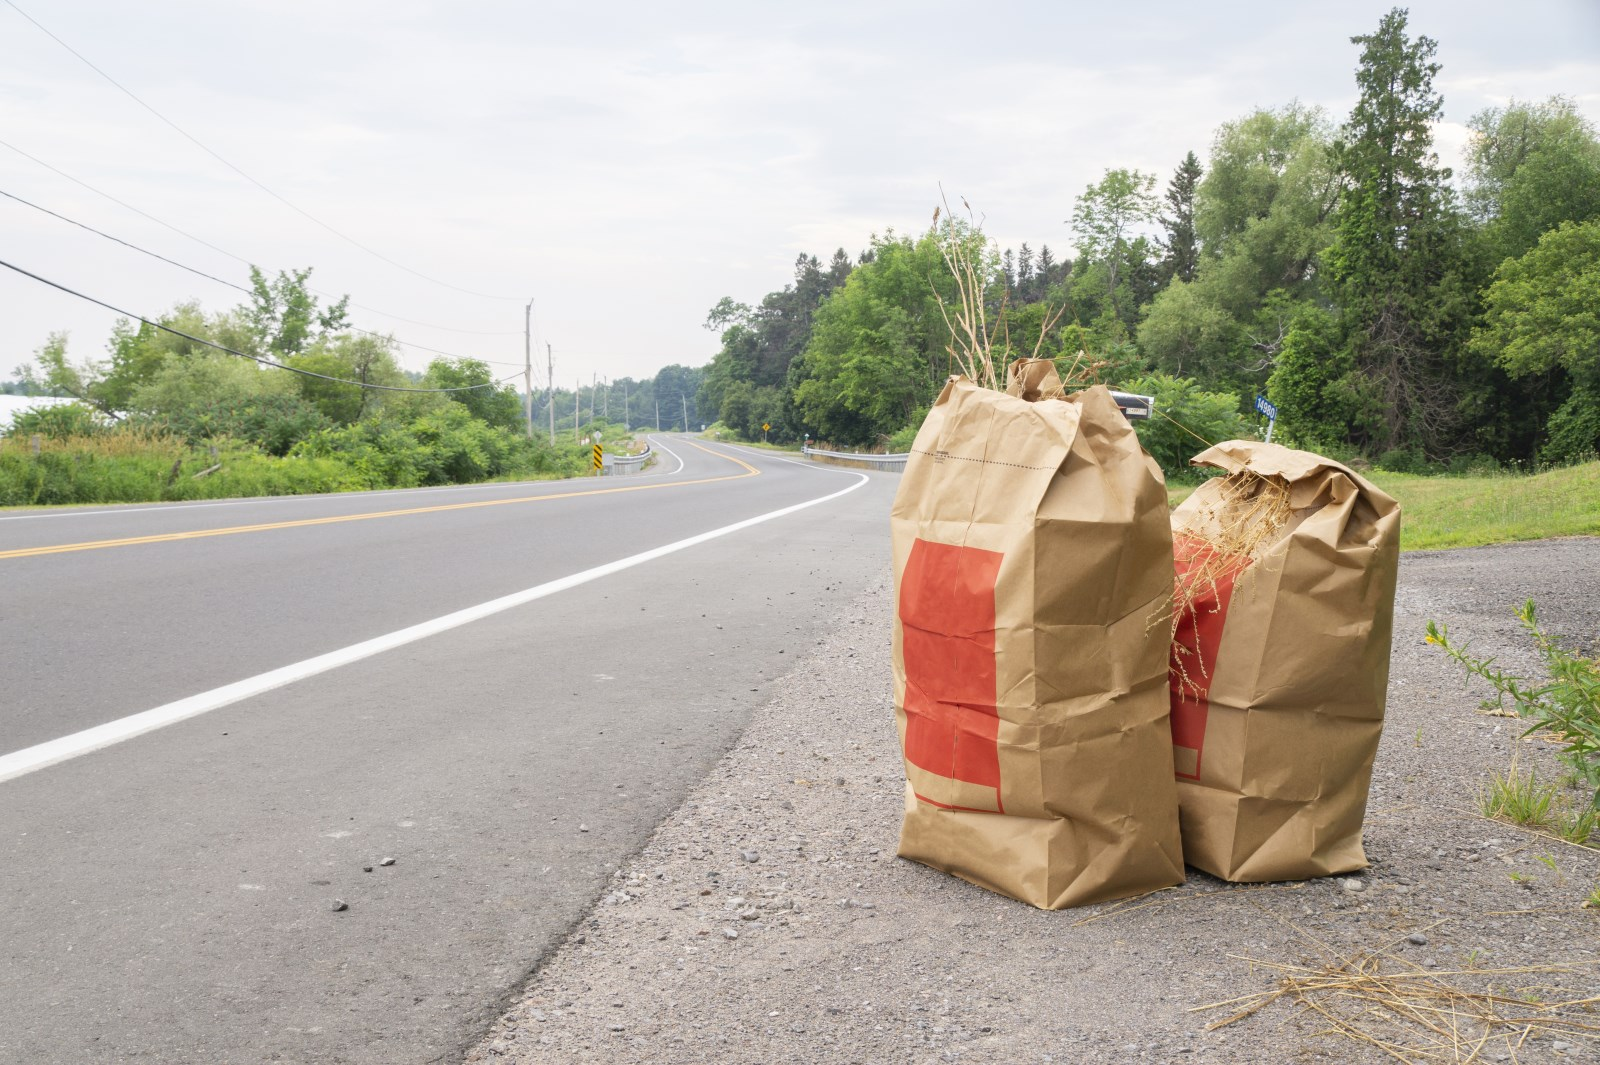 Two leaf and yard waste bags sitting on the side of the road